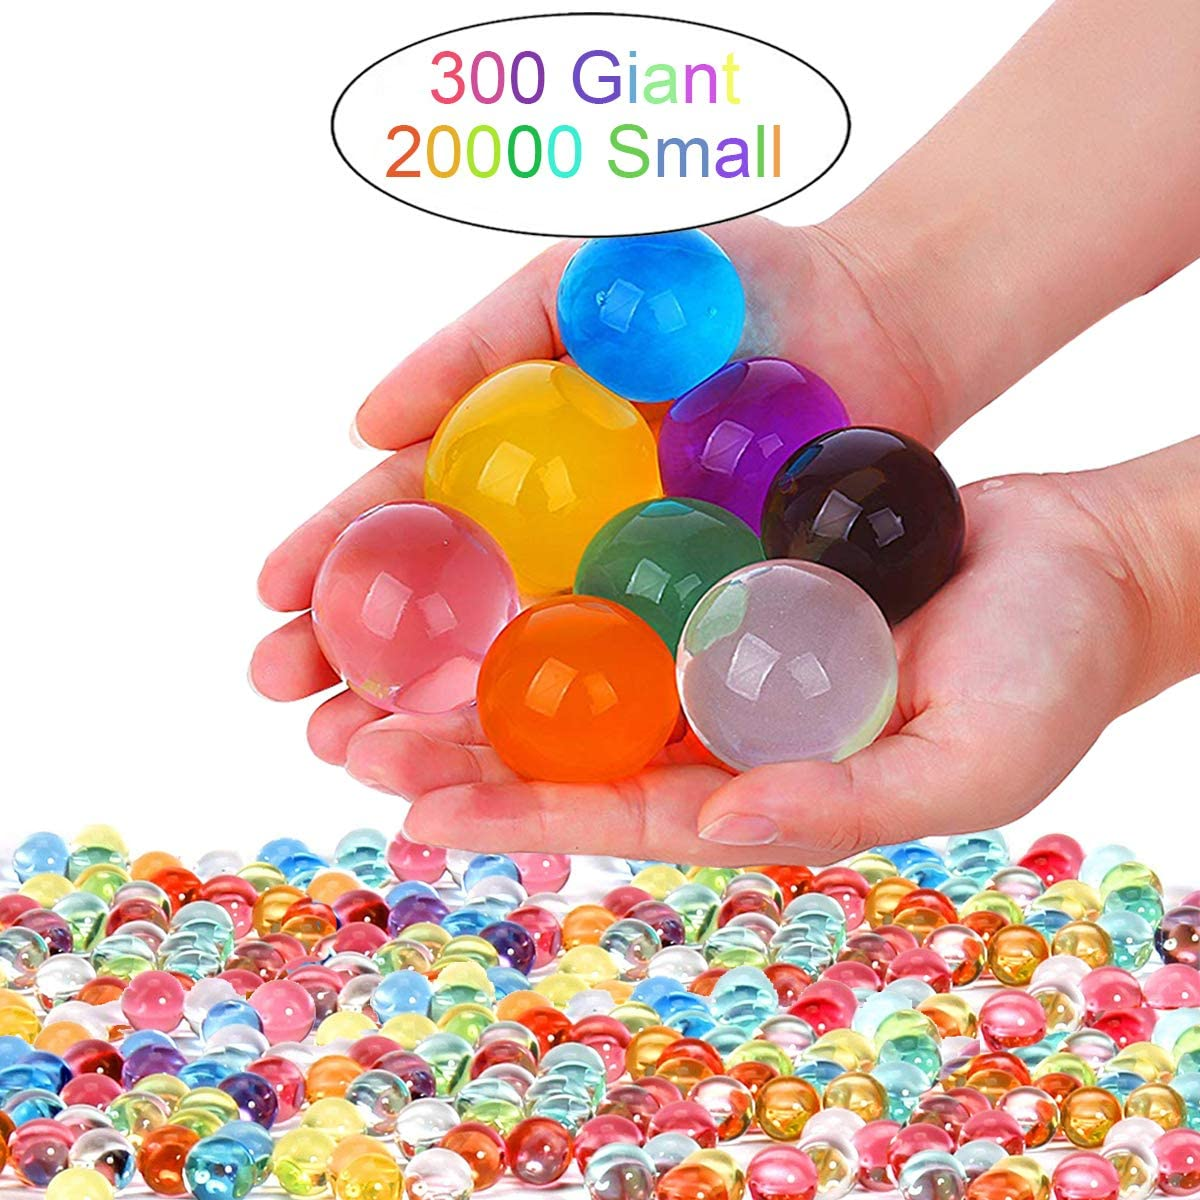 Leeche Non Toxic Water Beads Kit 300pcs Giant & 20000 Small Gel Beads for Kids-Value Package Sensory Toys and Decoration